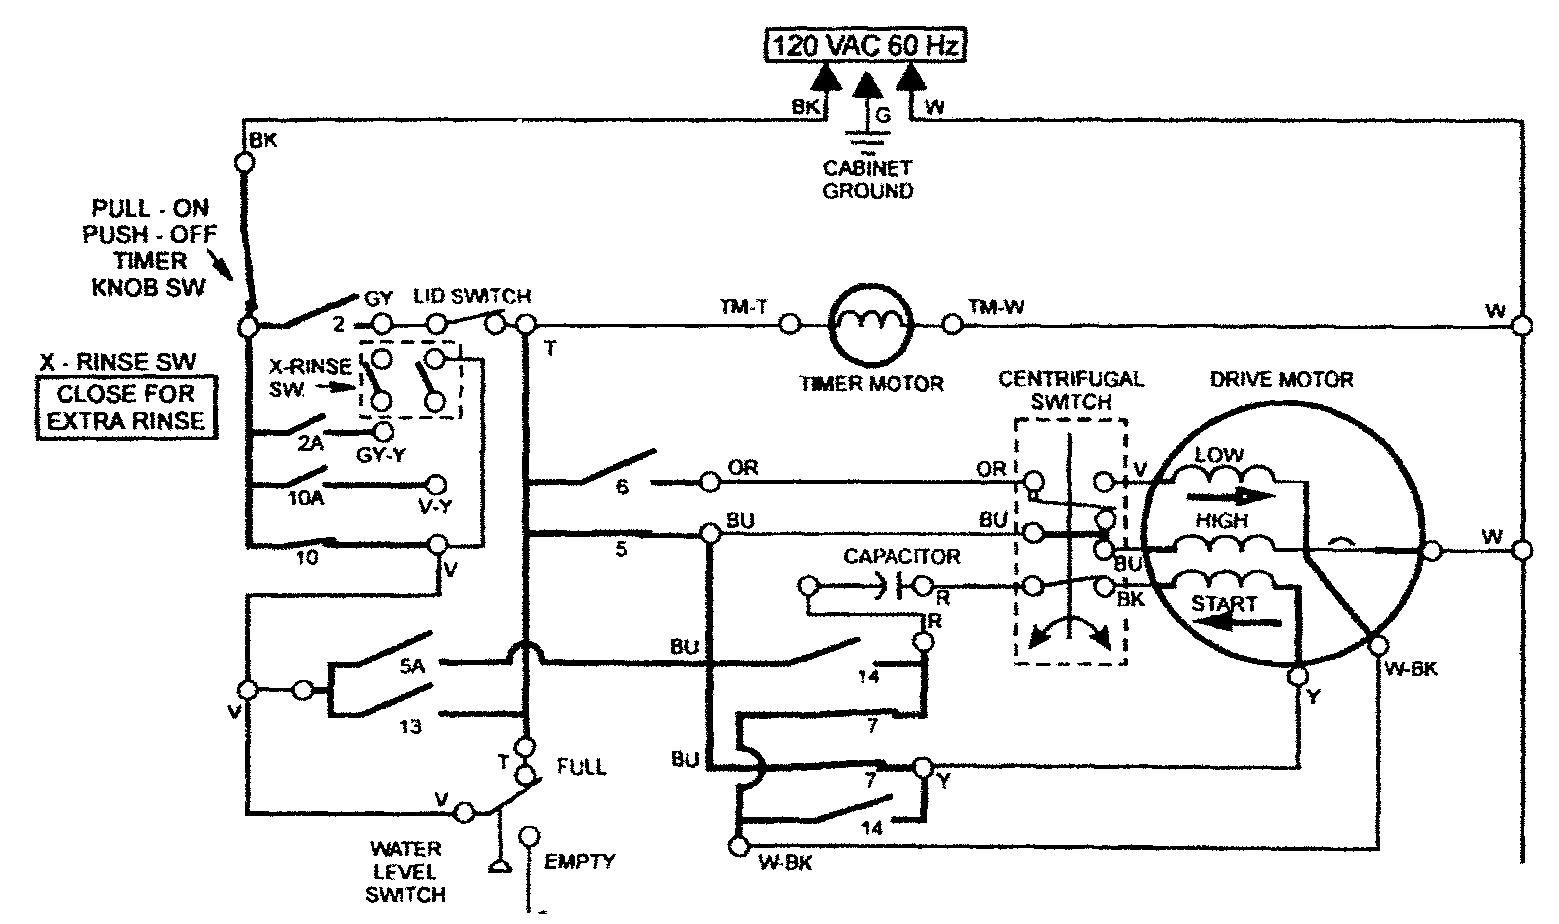 Grundfos Control Box Wiring Diagram likewise Electrical Control Circuit Schematic as well Mobile Home Electric Furnace in addition Ceiling Fan Wiring Diagram With furthermore Types Of Single Phase Induction Motors. on wiring diagram two capacitor motor